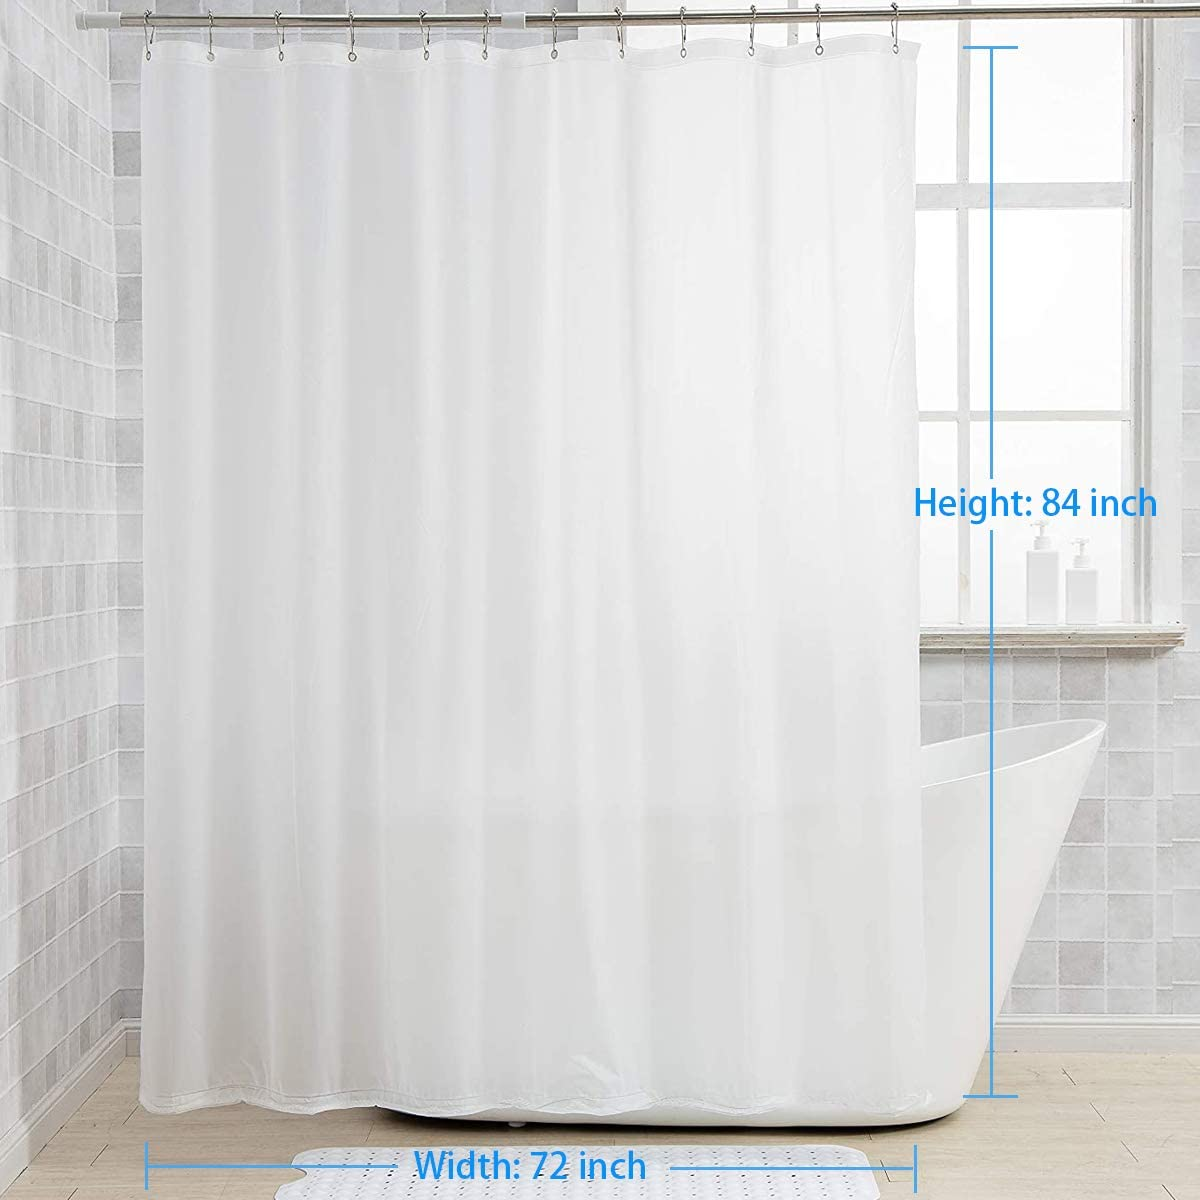 72 W x 65 H PEVA 3G Shower Curtains with Heavy Duty Beads and 12 Grommet Holes Clear Waterproof Plastic Liners AmazerBath 2 Pack Thin Shower Curtain Liners